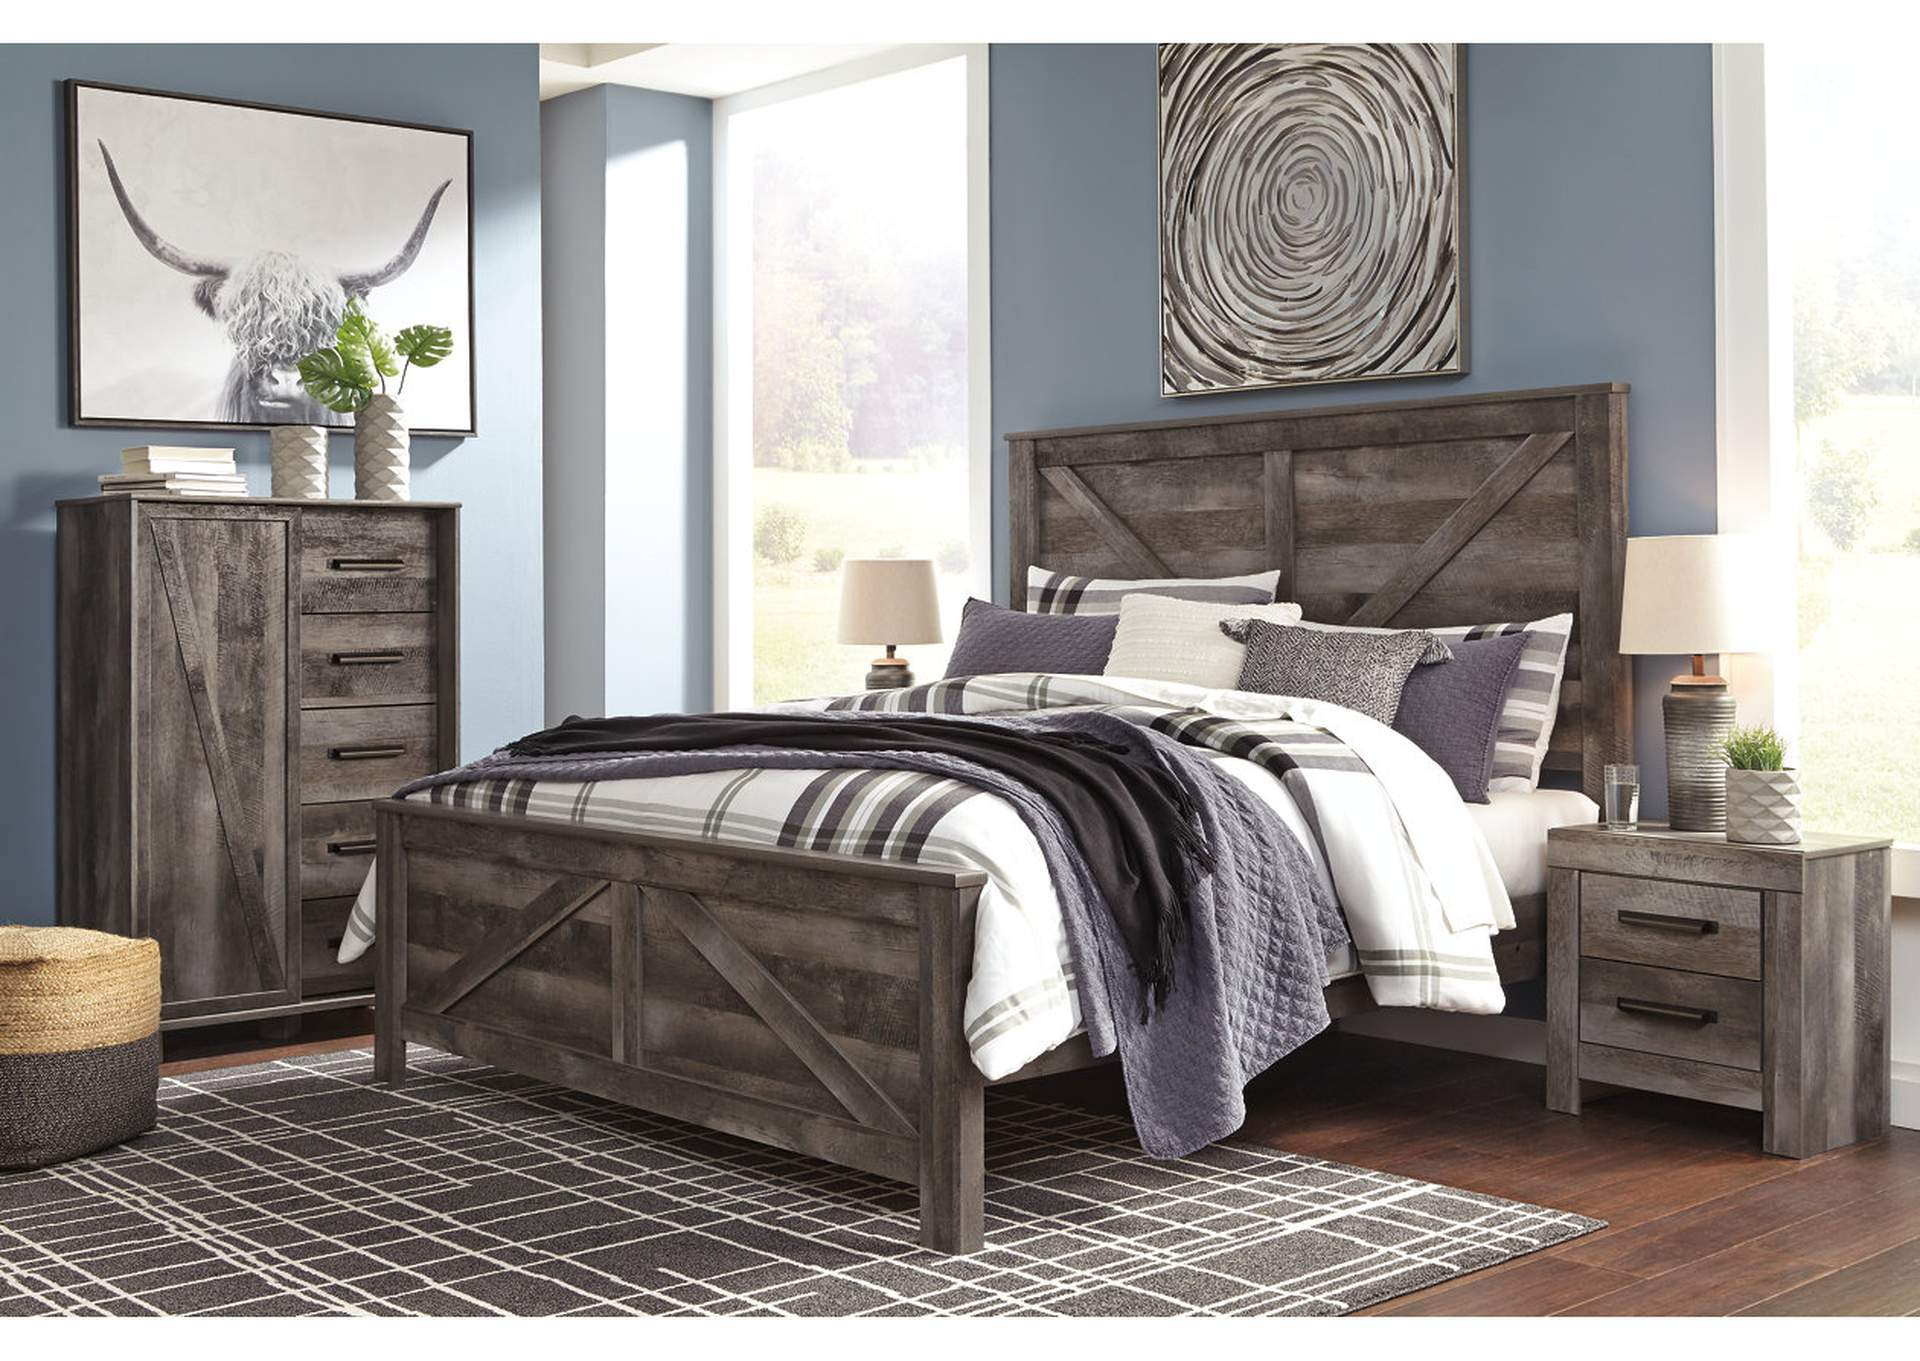 Wynnlow King Crossbuck Panel Bed,Signature Design By Ashley